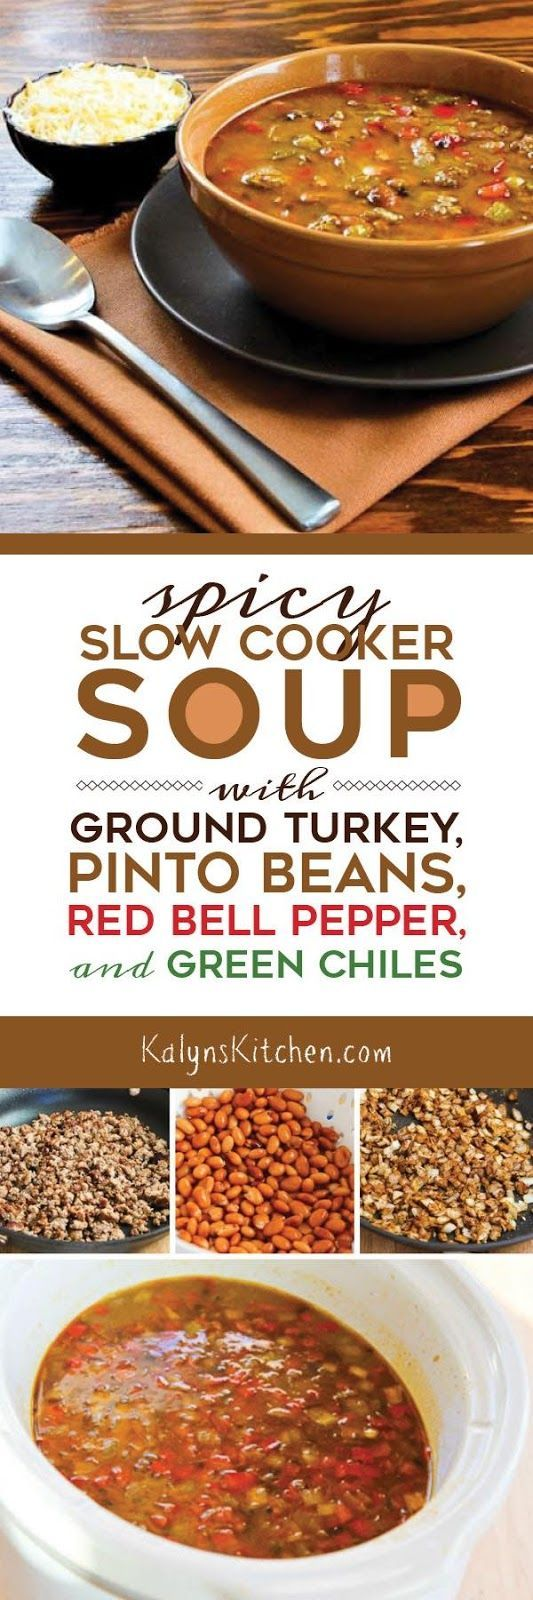 When you forget to plan ahead, this Spicy Slow Cooker soup with Ground Turkey, Pinto Beans, Red Bell Pepper, and Green Chiles cooks in 3-4 hours on high, and this tasty low-glycemic soup is also gluten-free and South Beach Diet Phase One!  [found on KalynsKitchen.com]